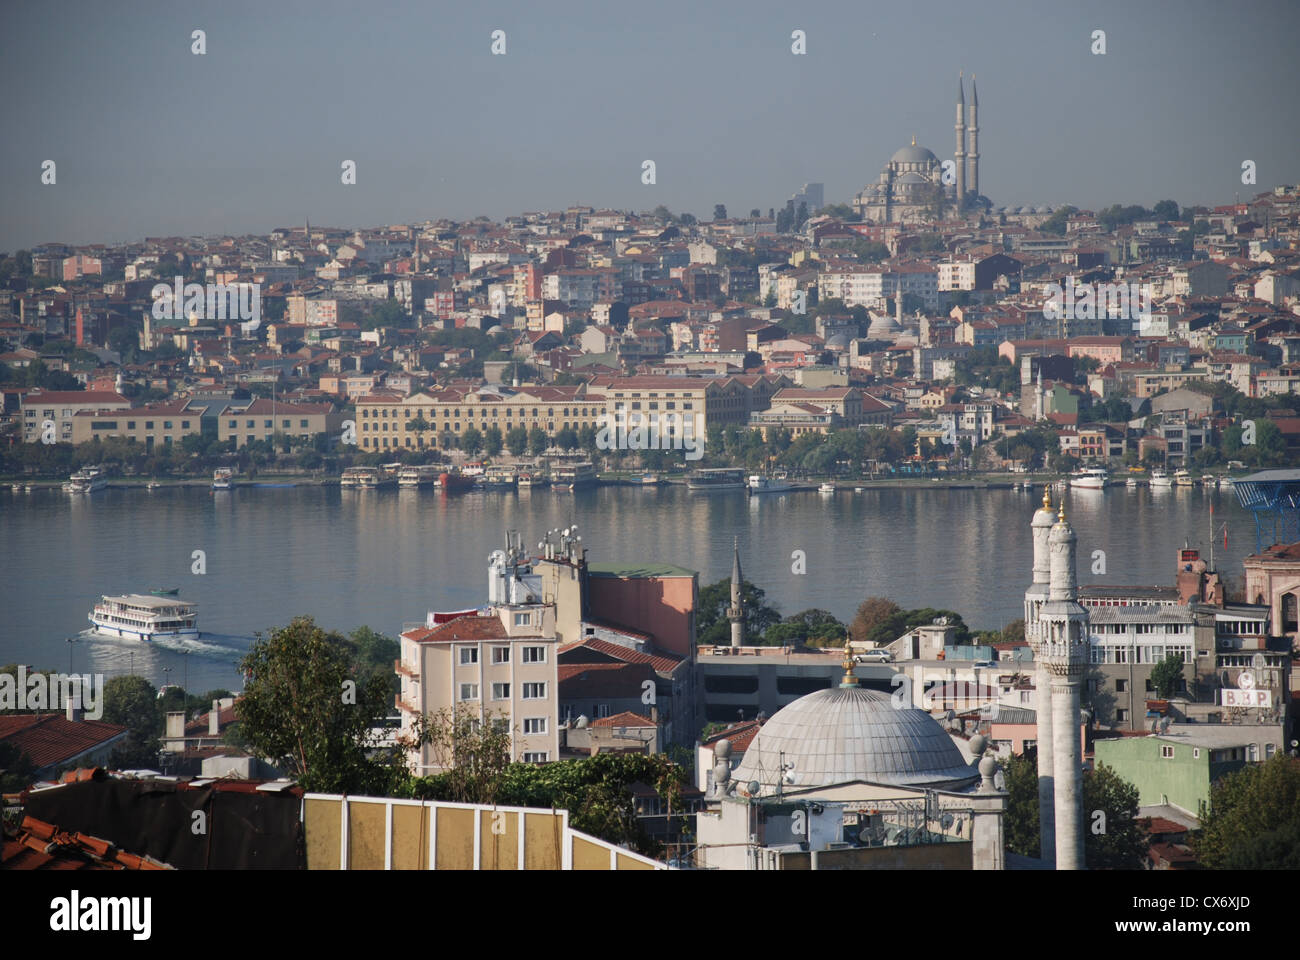 A view of the Golden Horn in Istanbul taken from Tepebasi. Picture by Adam Alexander/Alamy - Stock Image